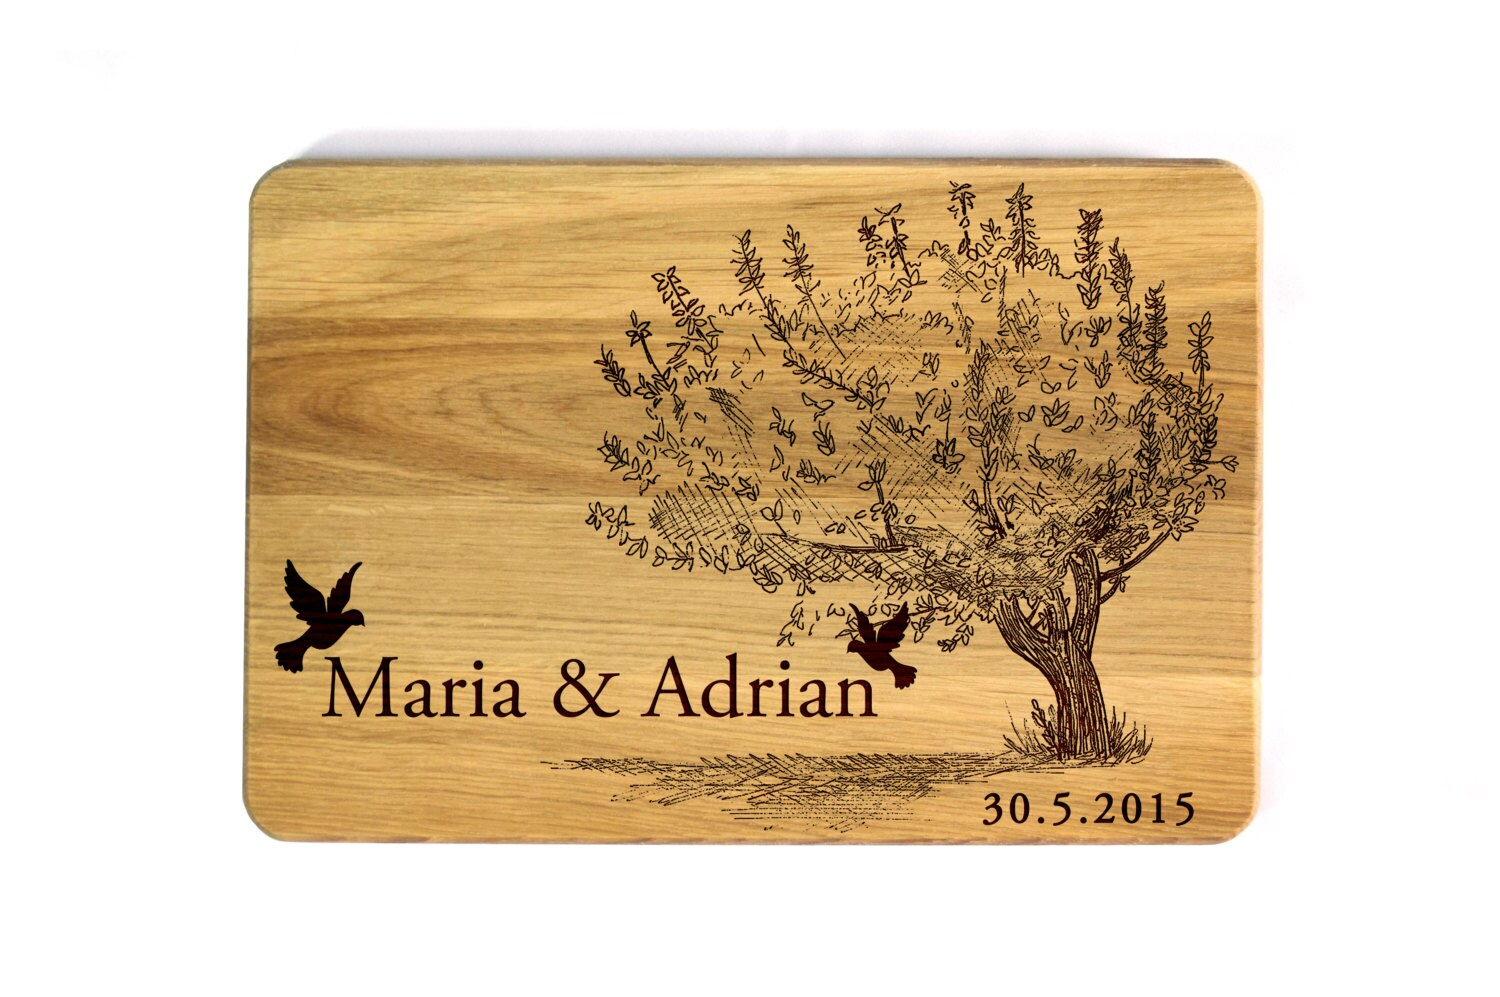 Personalized Wedding Gifts For Couples: Wedding Gift For Couple Personalized Wedding Gift Cutting